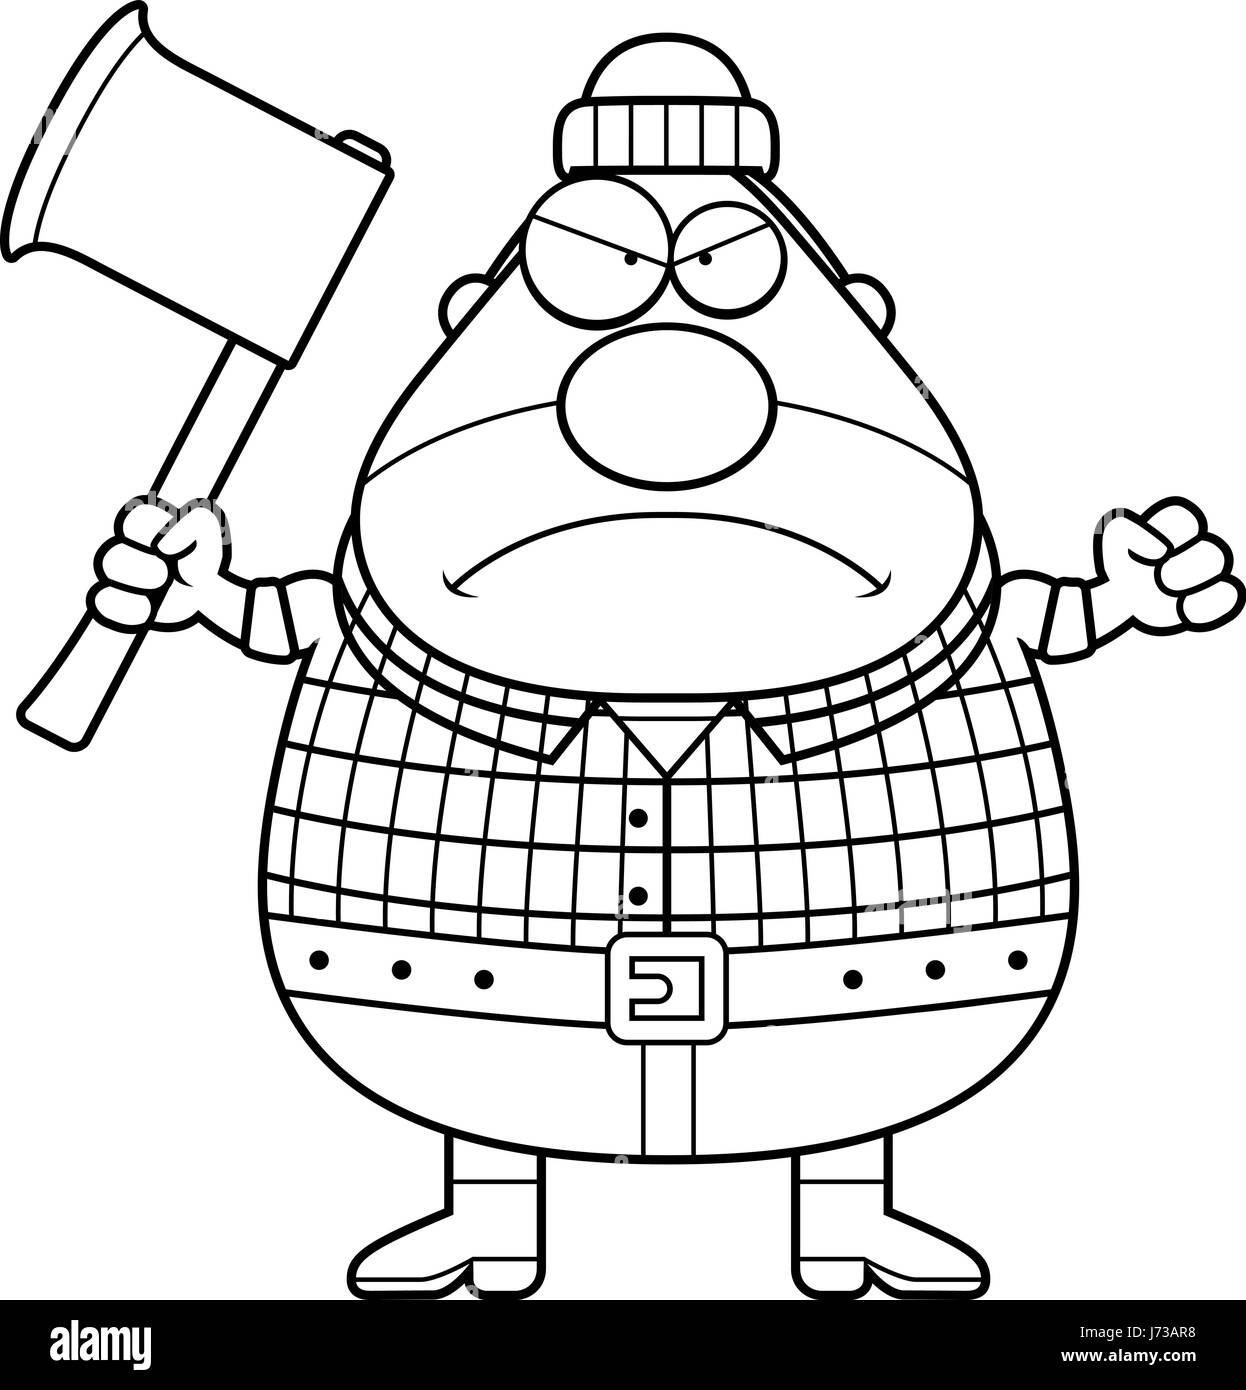 cartoon lumberjack illustration cut out stock images pictures alamy  a cartoon illustration of a lumberjack looking angry stock image